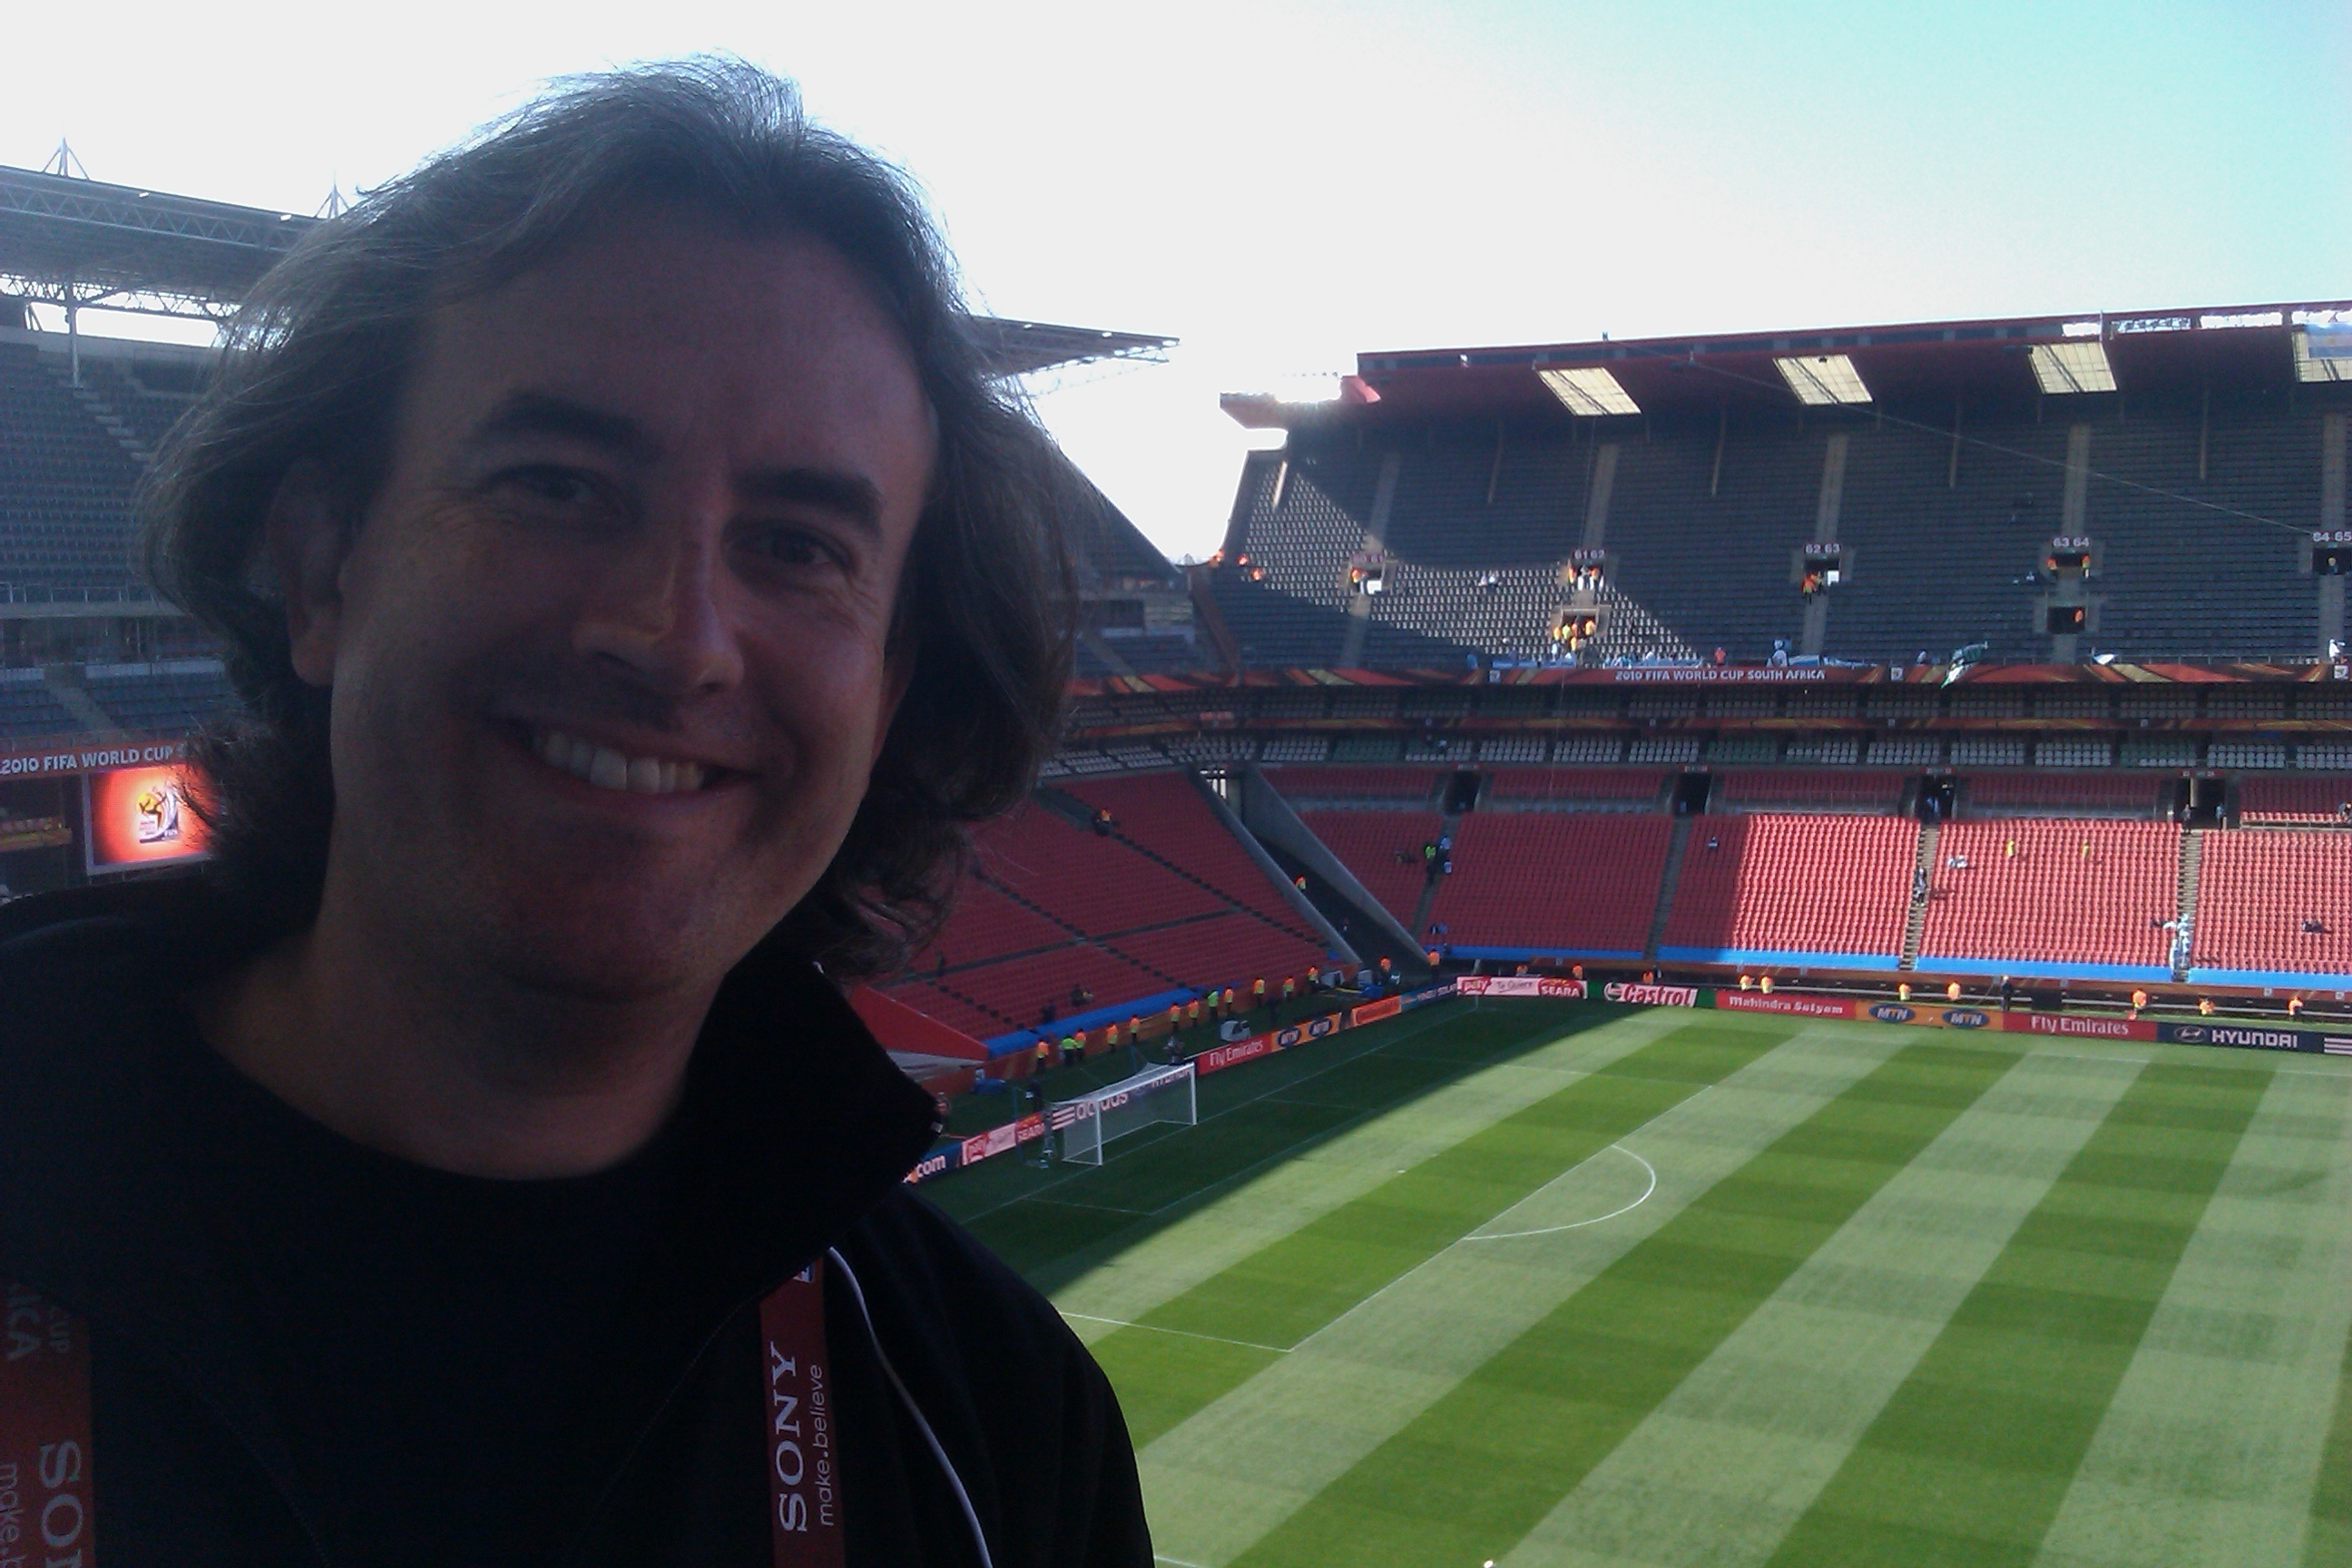 At Ellis Park ahead of Argentina/Nigeria - you could sense the history here...